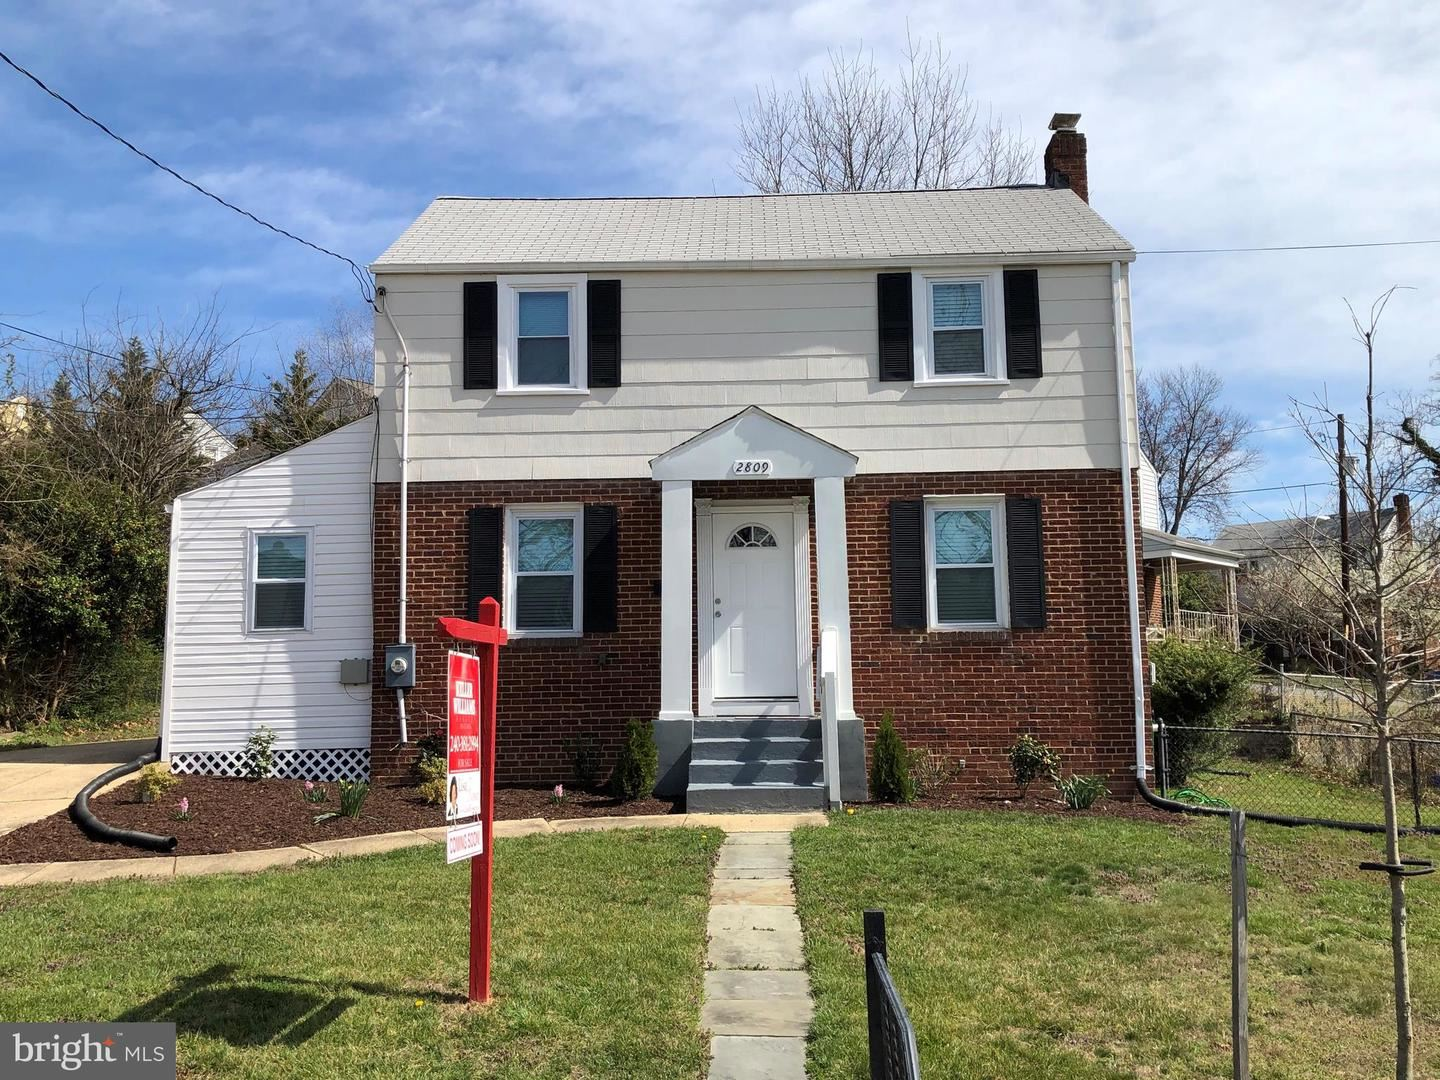 2809 63RD AVE, Cheverly, MD 20785 - MLS#: MDPG562536